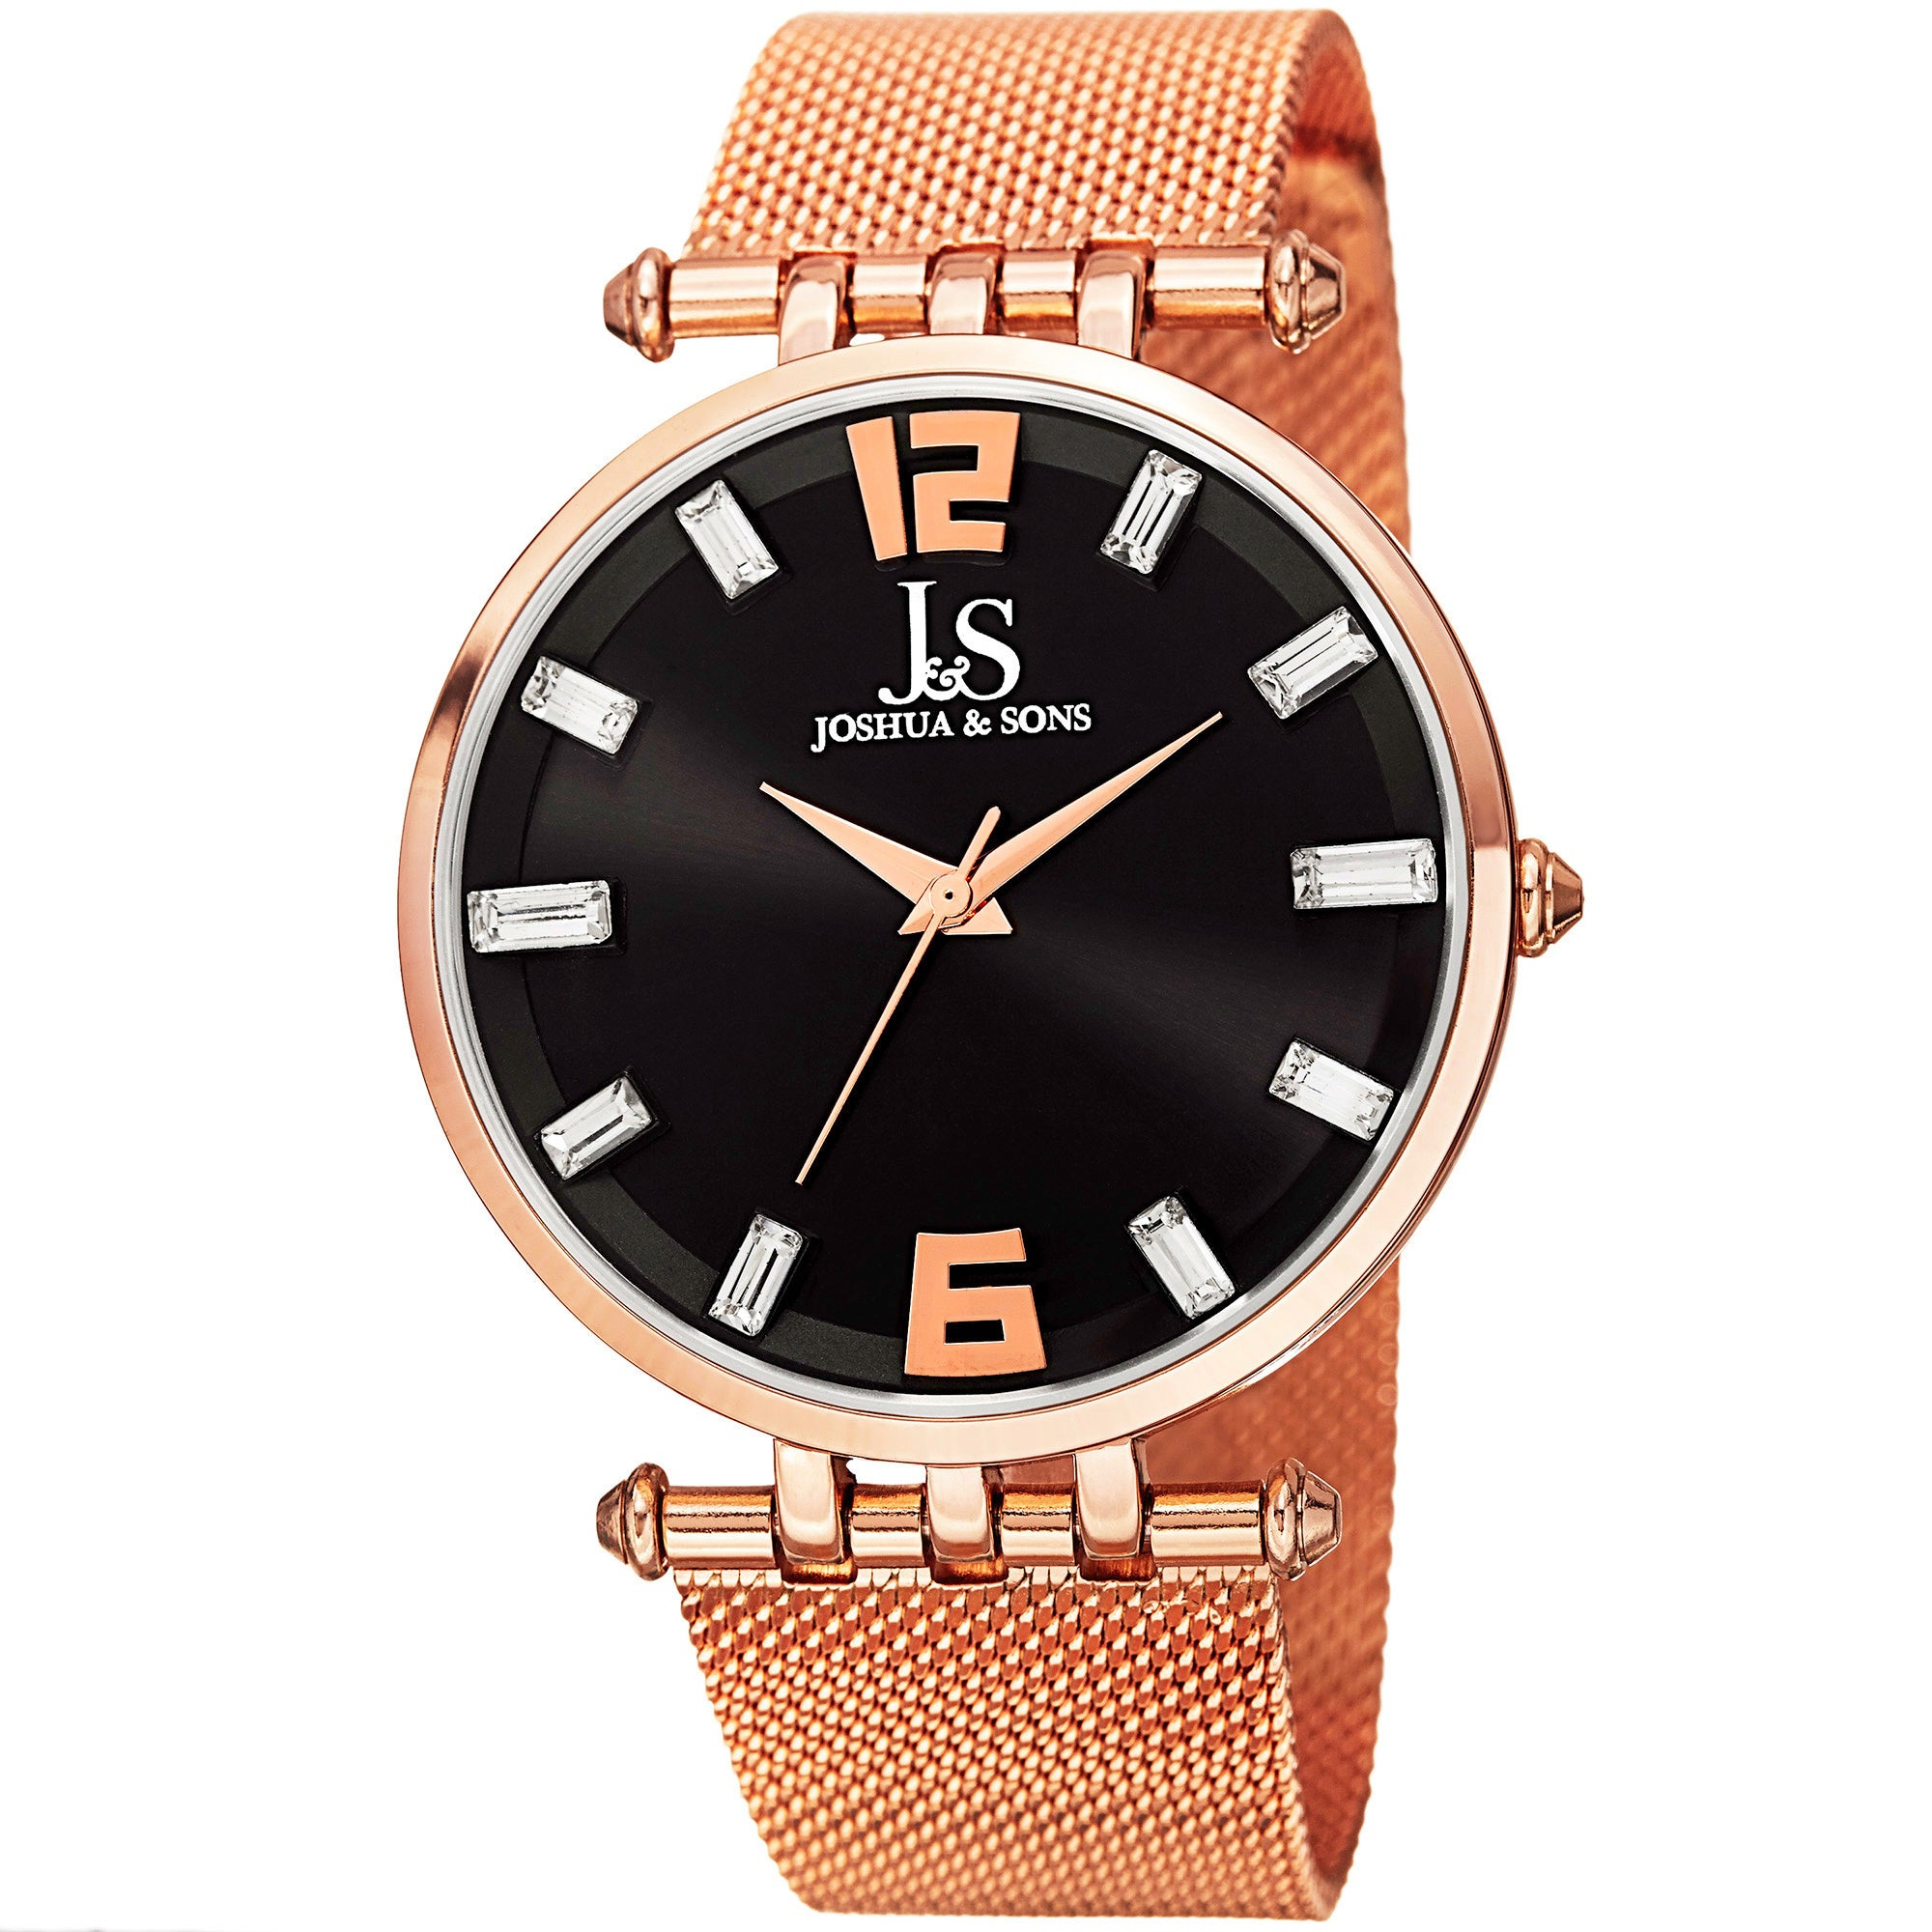 J&S Men's Swiss Quartz Crystal-Accented Watch with Stainl...